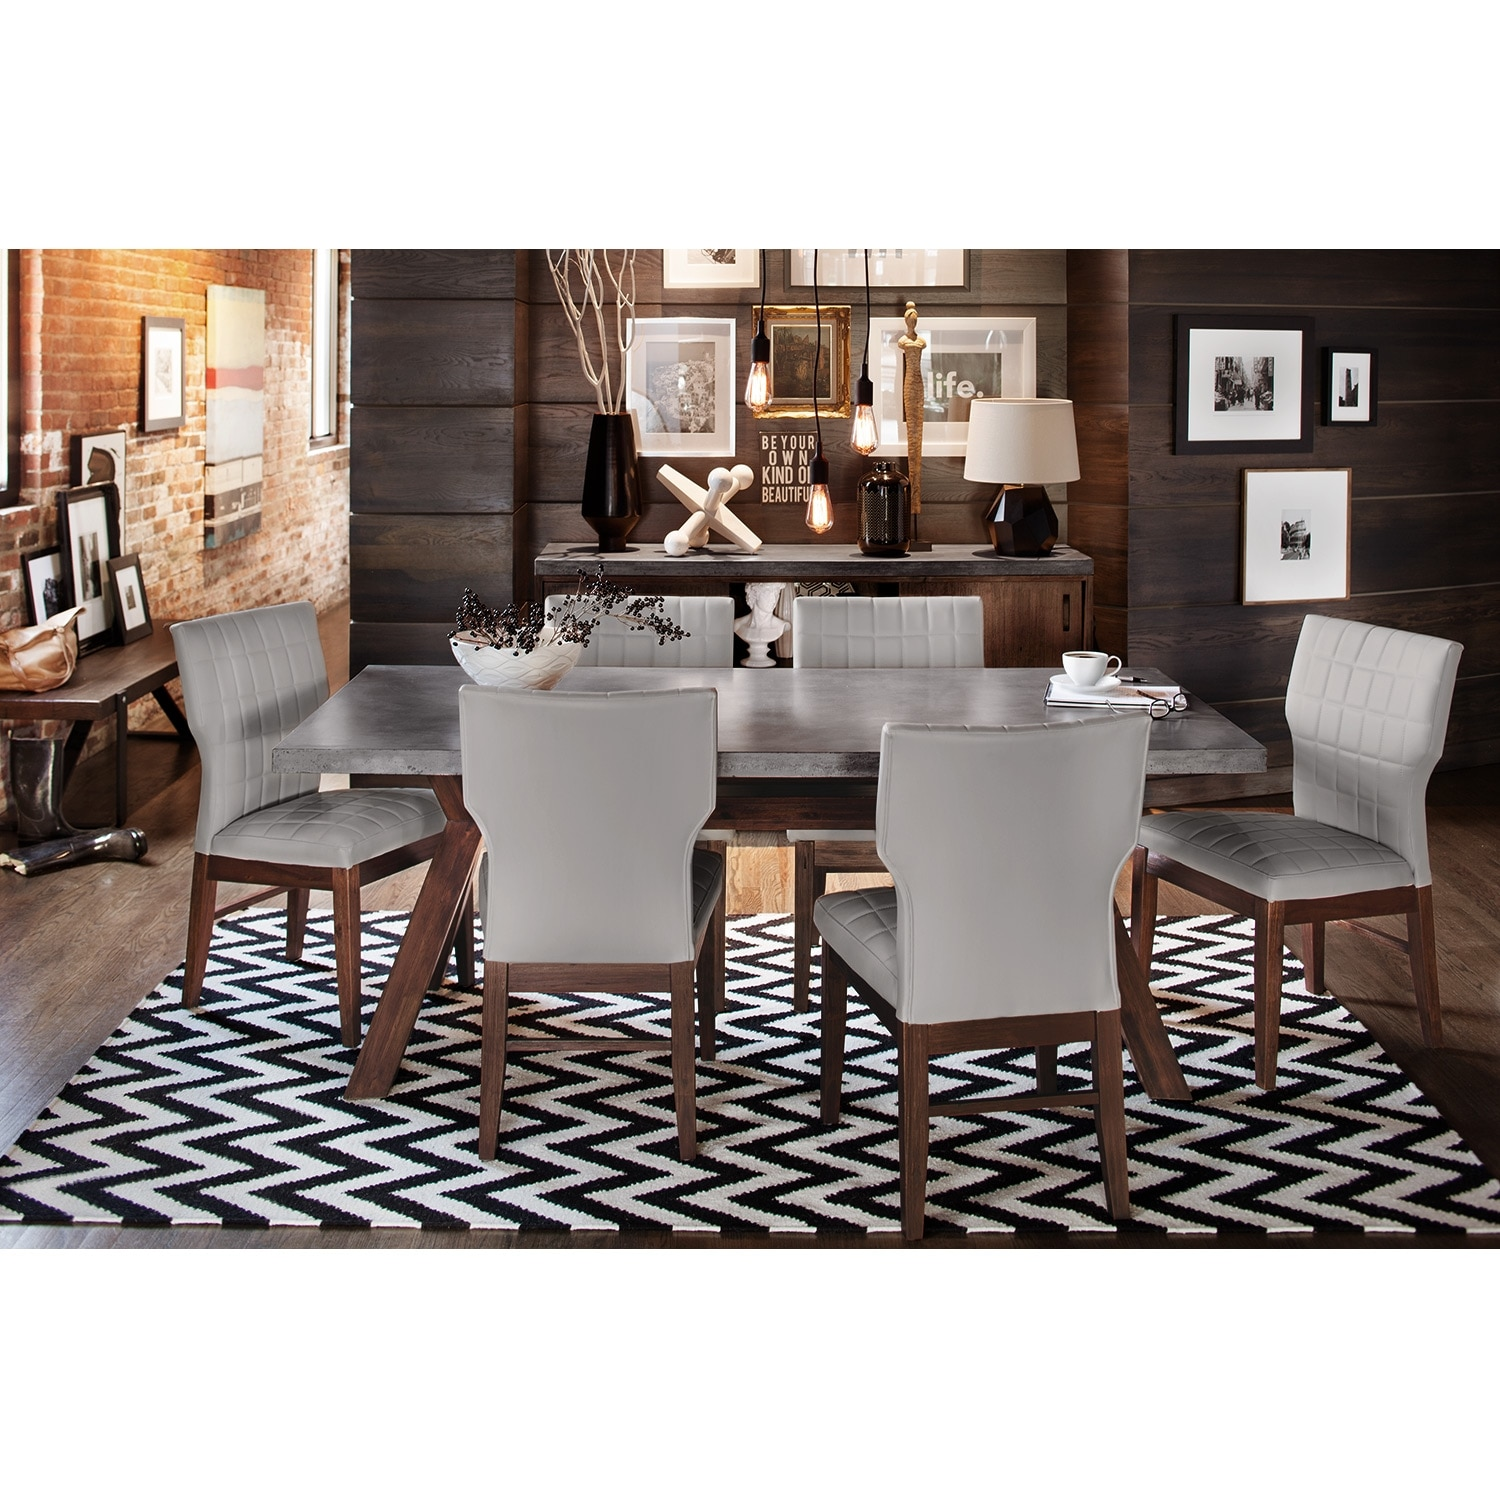 dining room furniture mercer ii chair